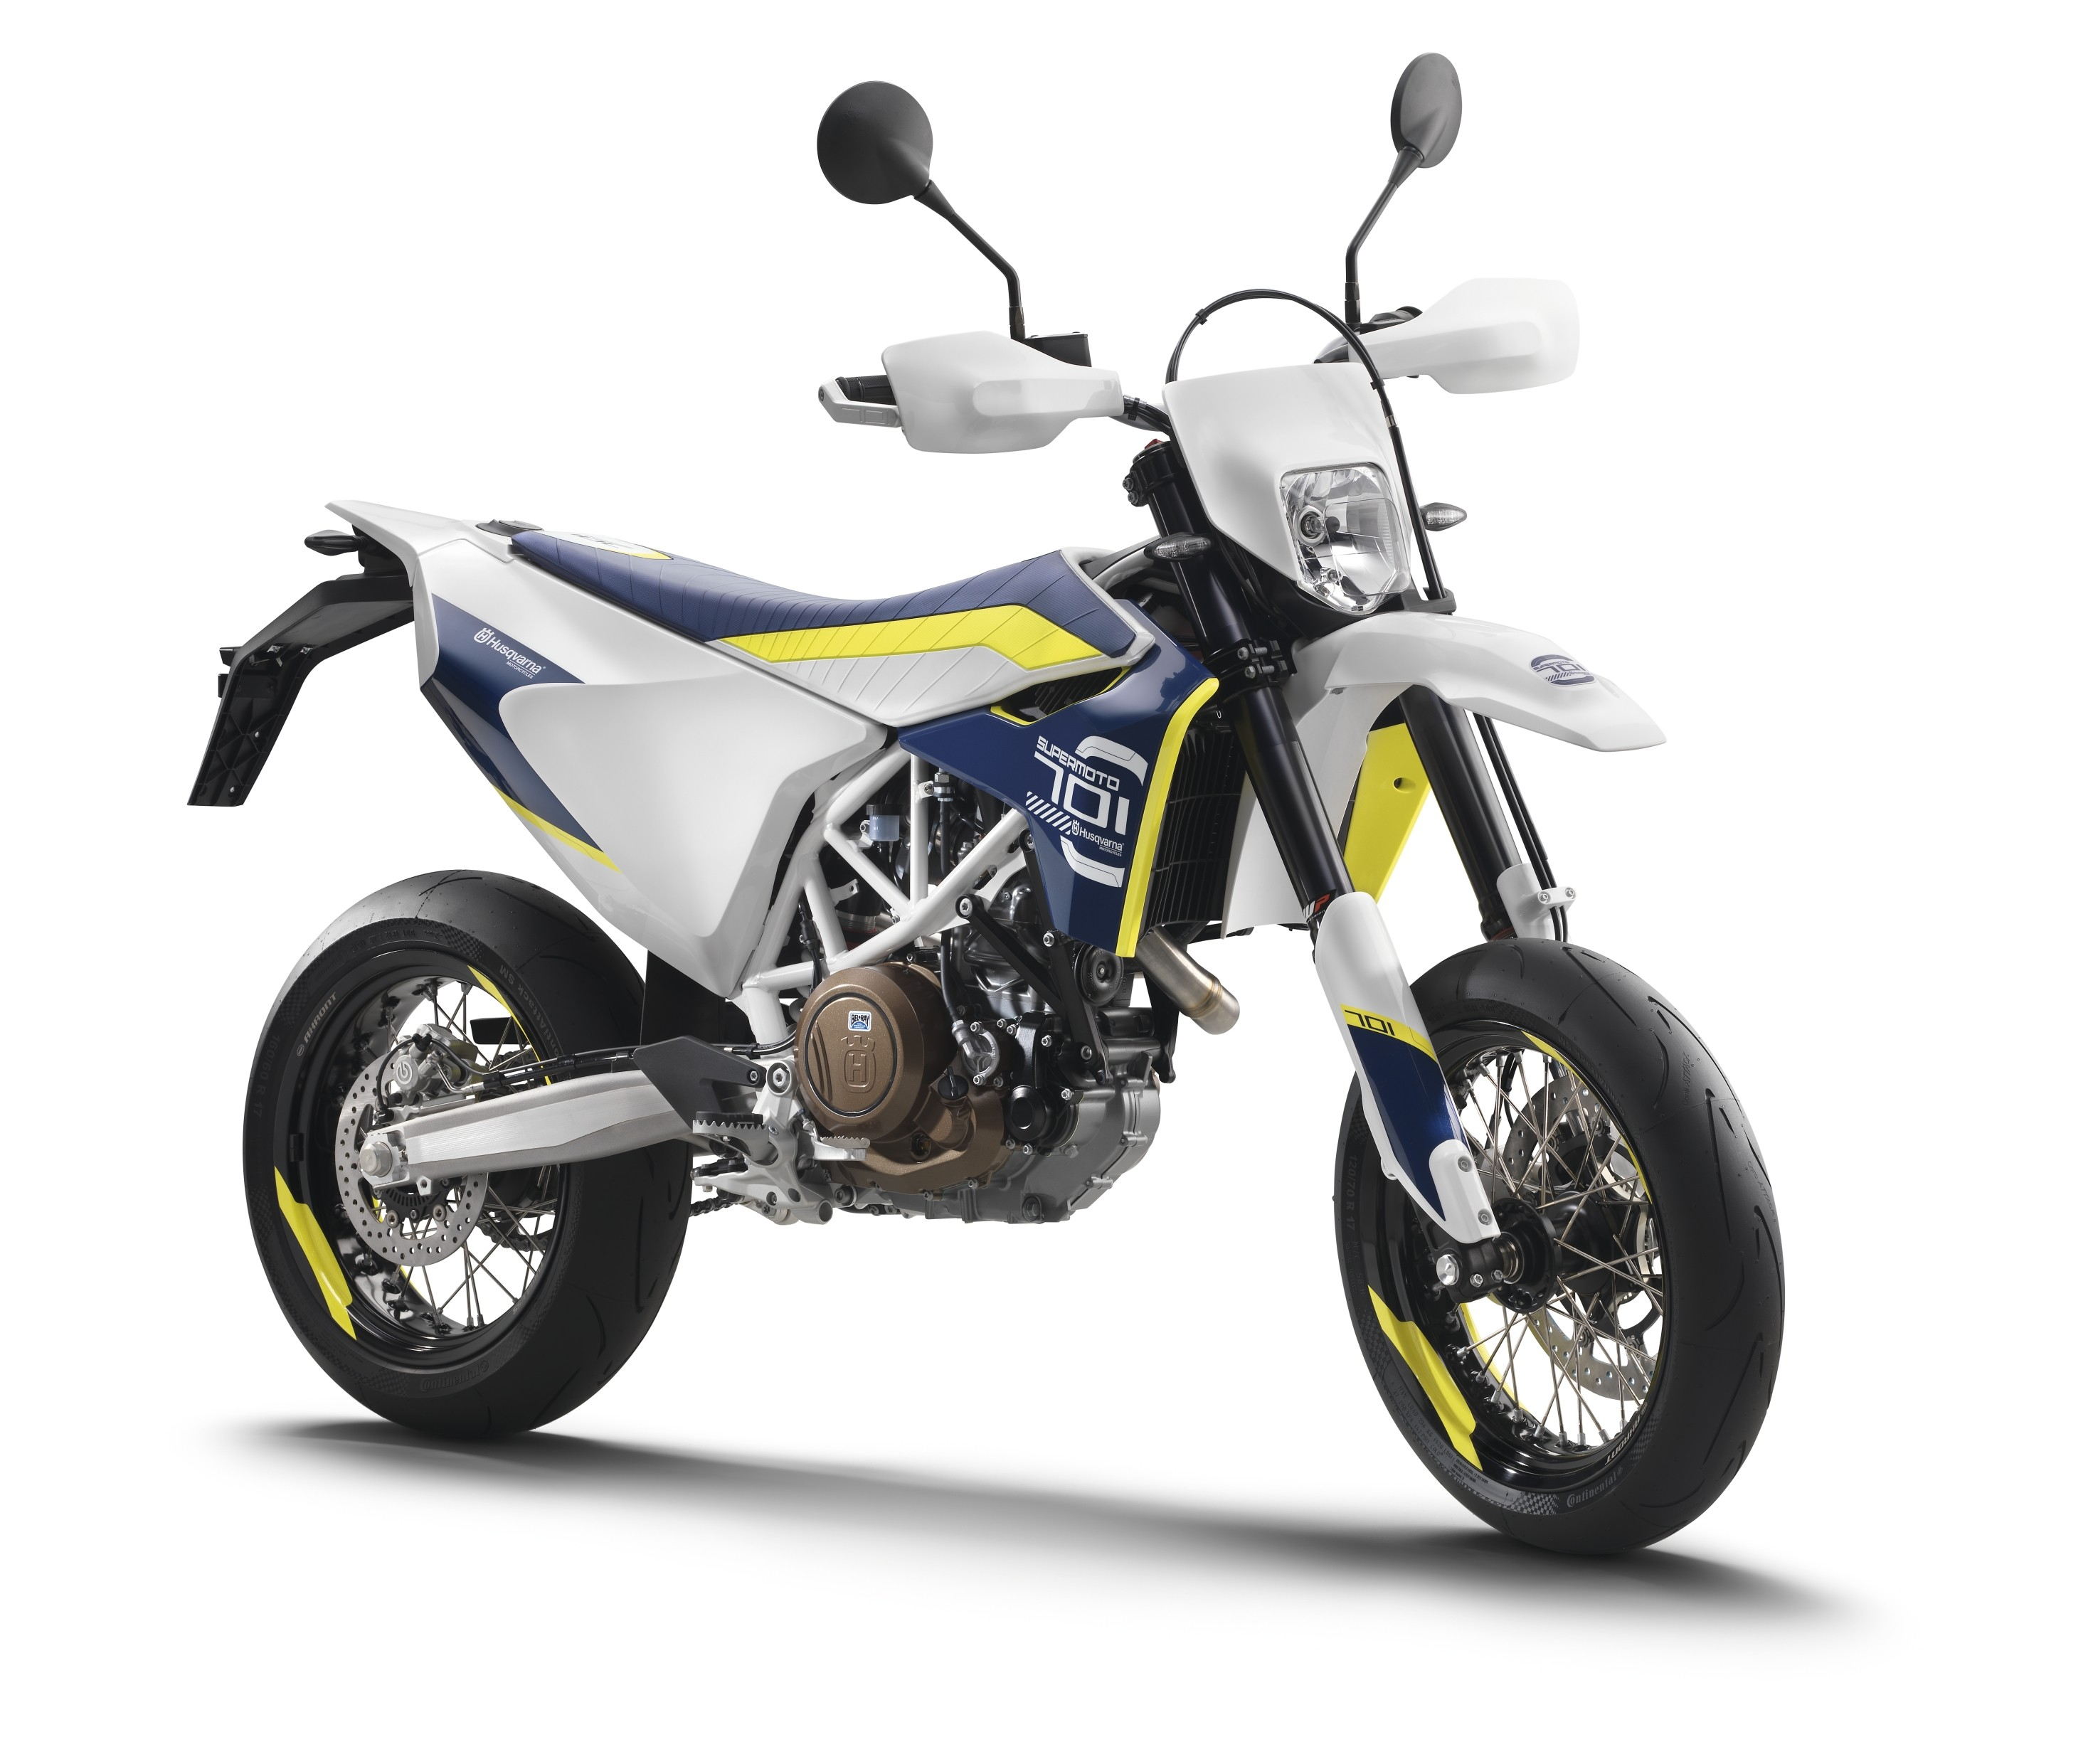 husqvarna 701 supermoto availability dates for europe and us revealed autoevolution. Black Bedroom Furniture Sets. Home Design Ideas